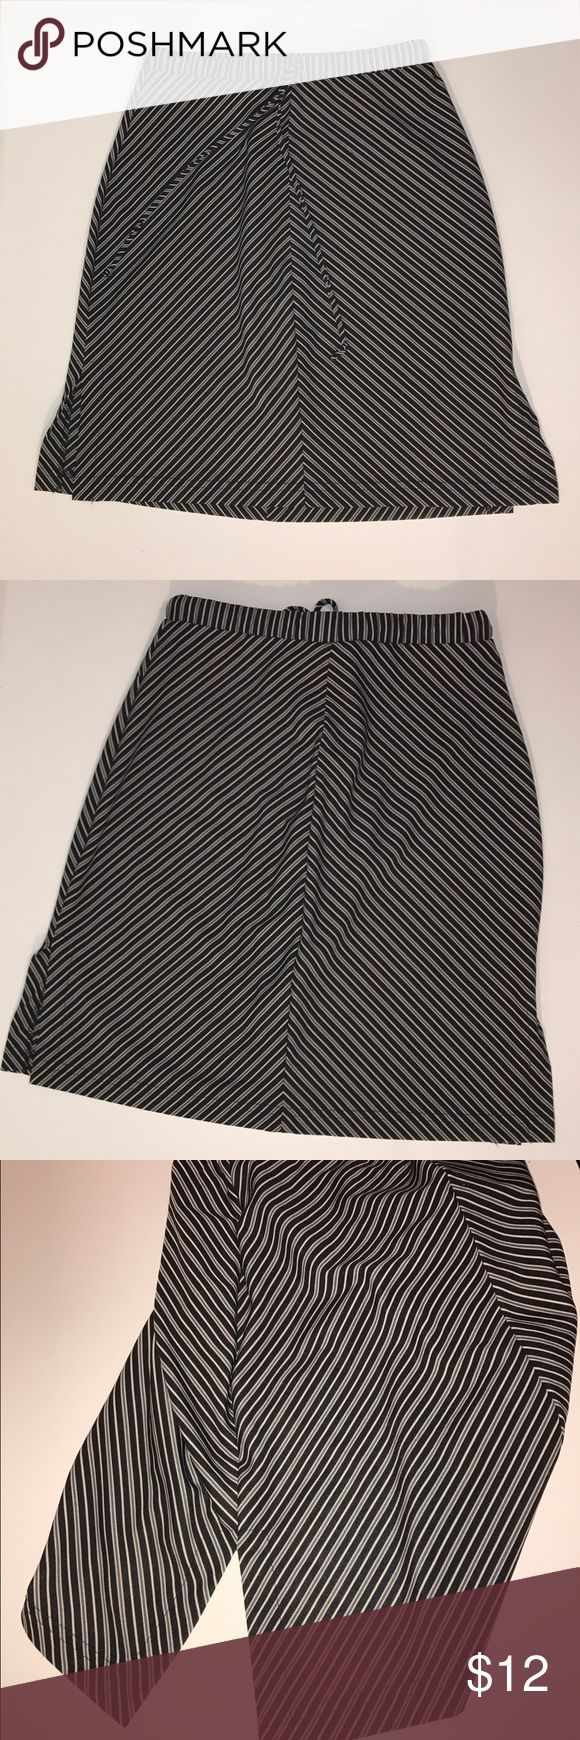 XOXO, black & white strip skirt. Size S XOXO black & white striped skirt. Very flattering, especially with the way the strips are placed. Has a tie at the waste. Size Small Skirts Midi